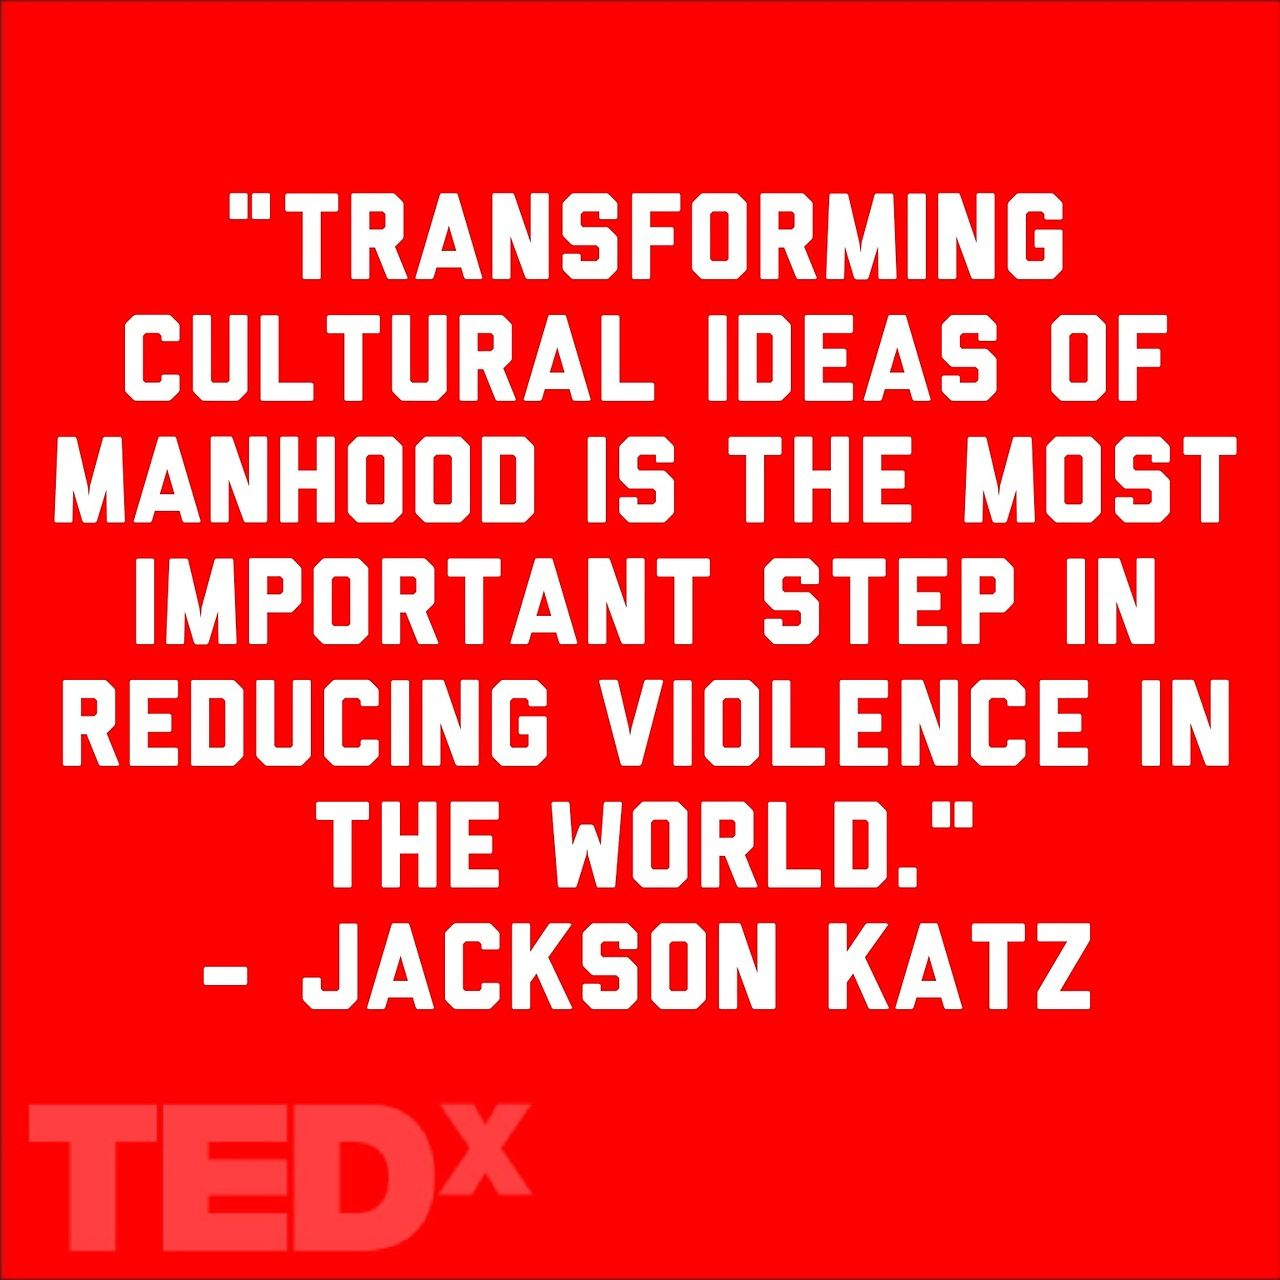 """Transforming cultural ideas of manhood is the most important step in reducing violence in the world."" - anti-sexism activist Jackson Katz"